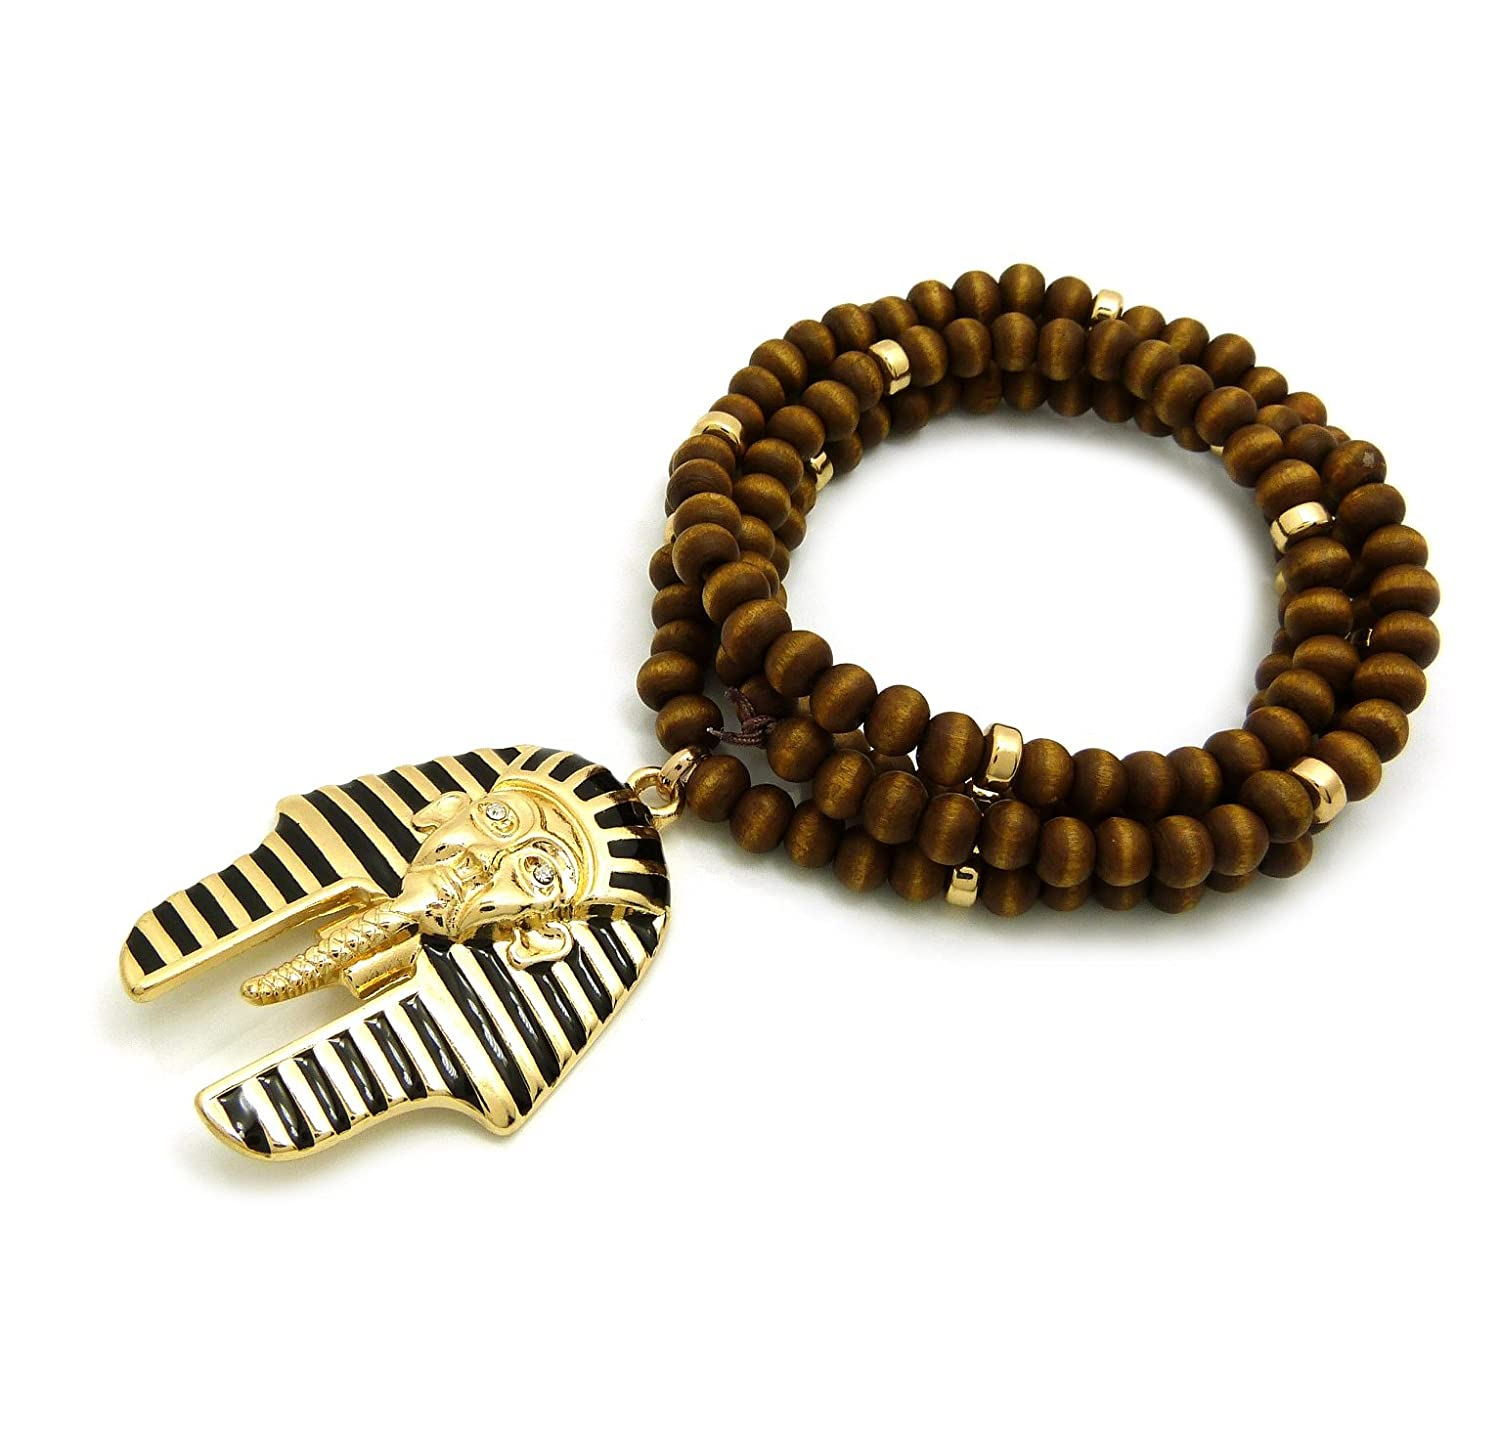 Egyptian Striped Pharaoh King Pendant 6mm 30 Wooden Bead Necklace Gold Black Tone